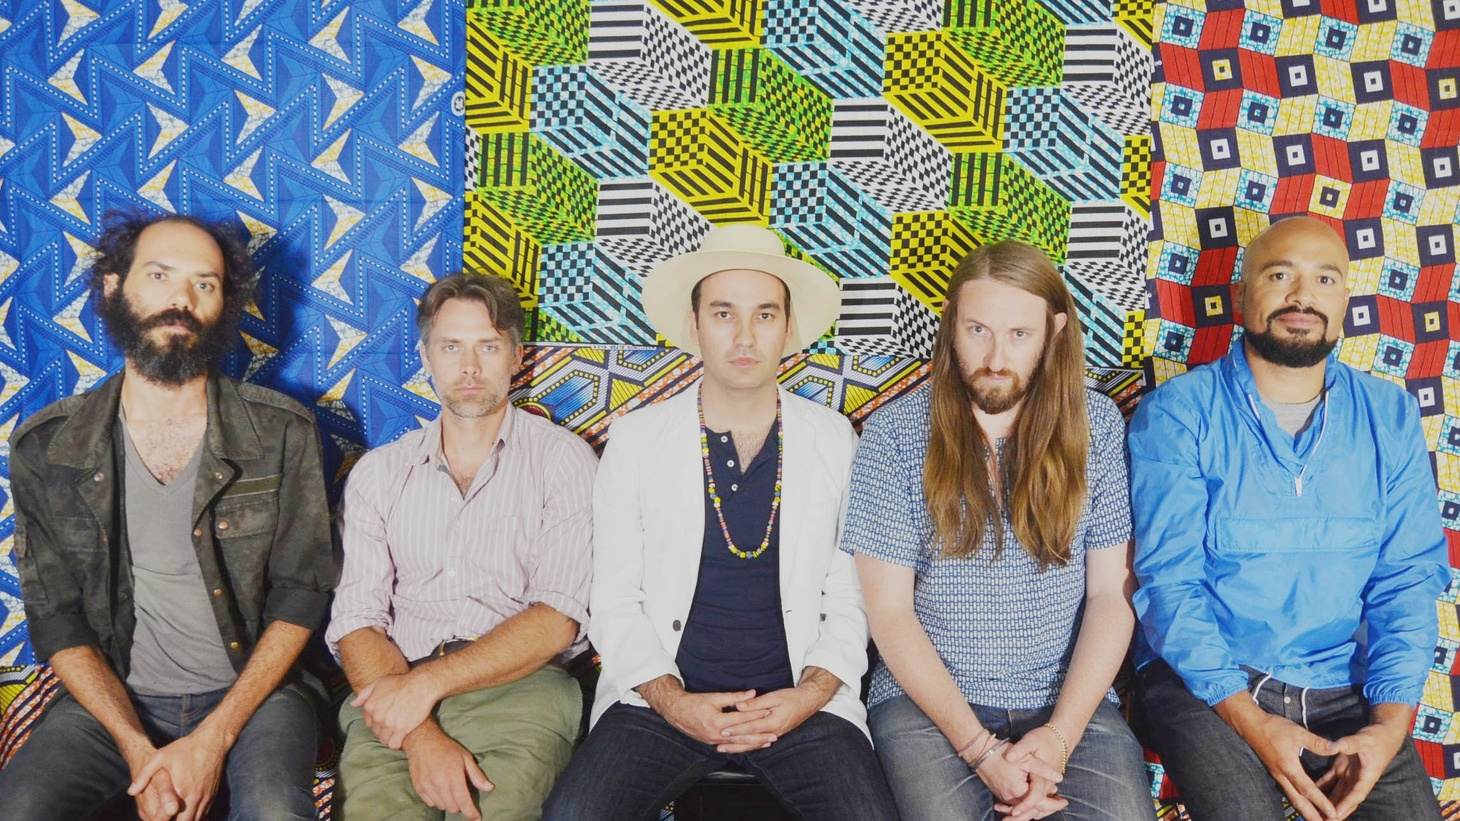 """LA's own Fool's Gold settled down after extensive touring to write a new album and we're excited to share an exclusive premiere of their first single """"I'm In Love"""" as Today's Top Tune."""